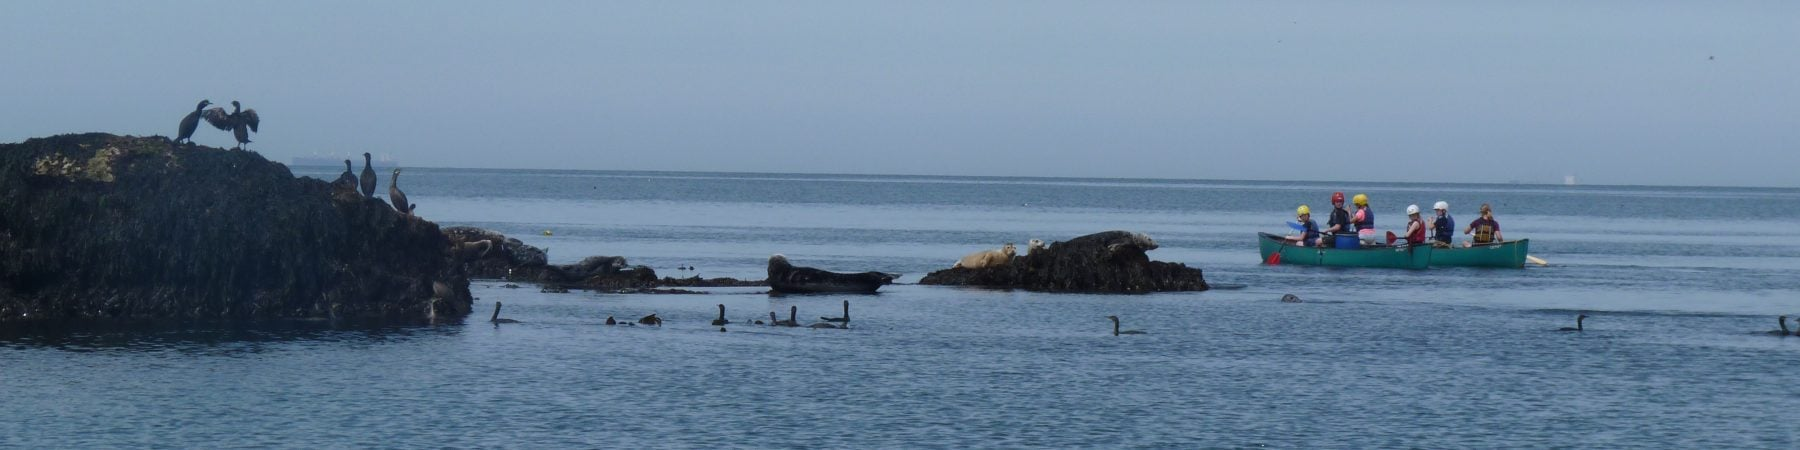 Group of 6 canoeing around Puffin Island with comarants on the rock and a calm sea.